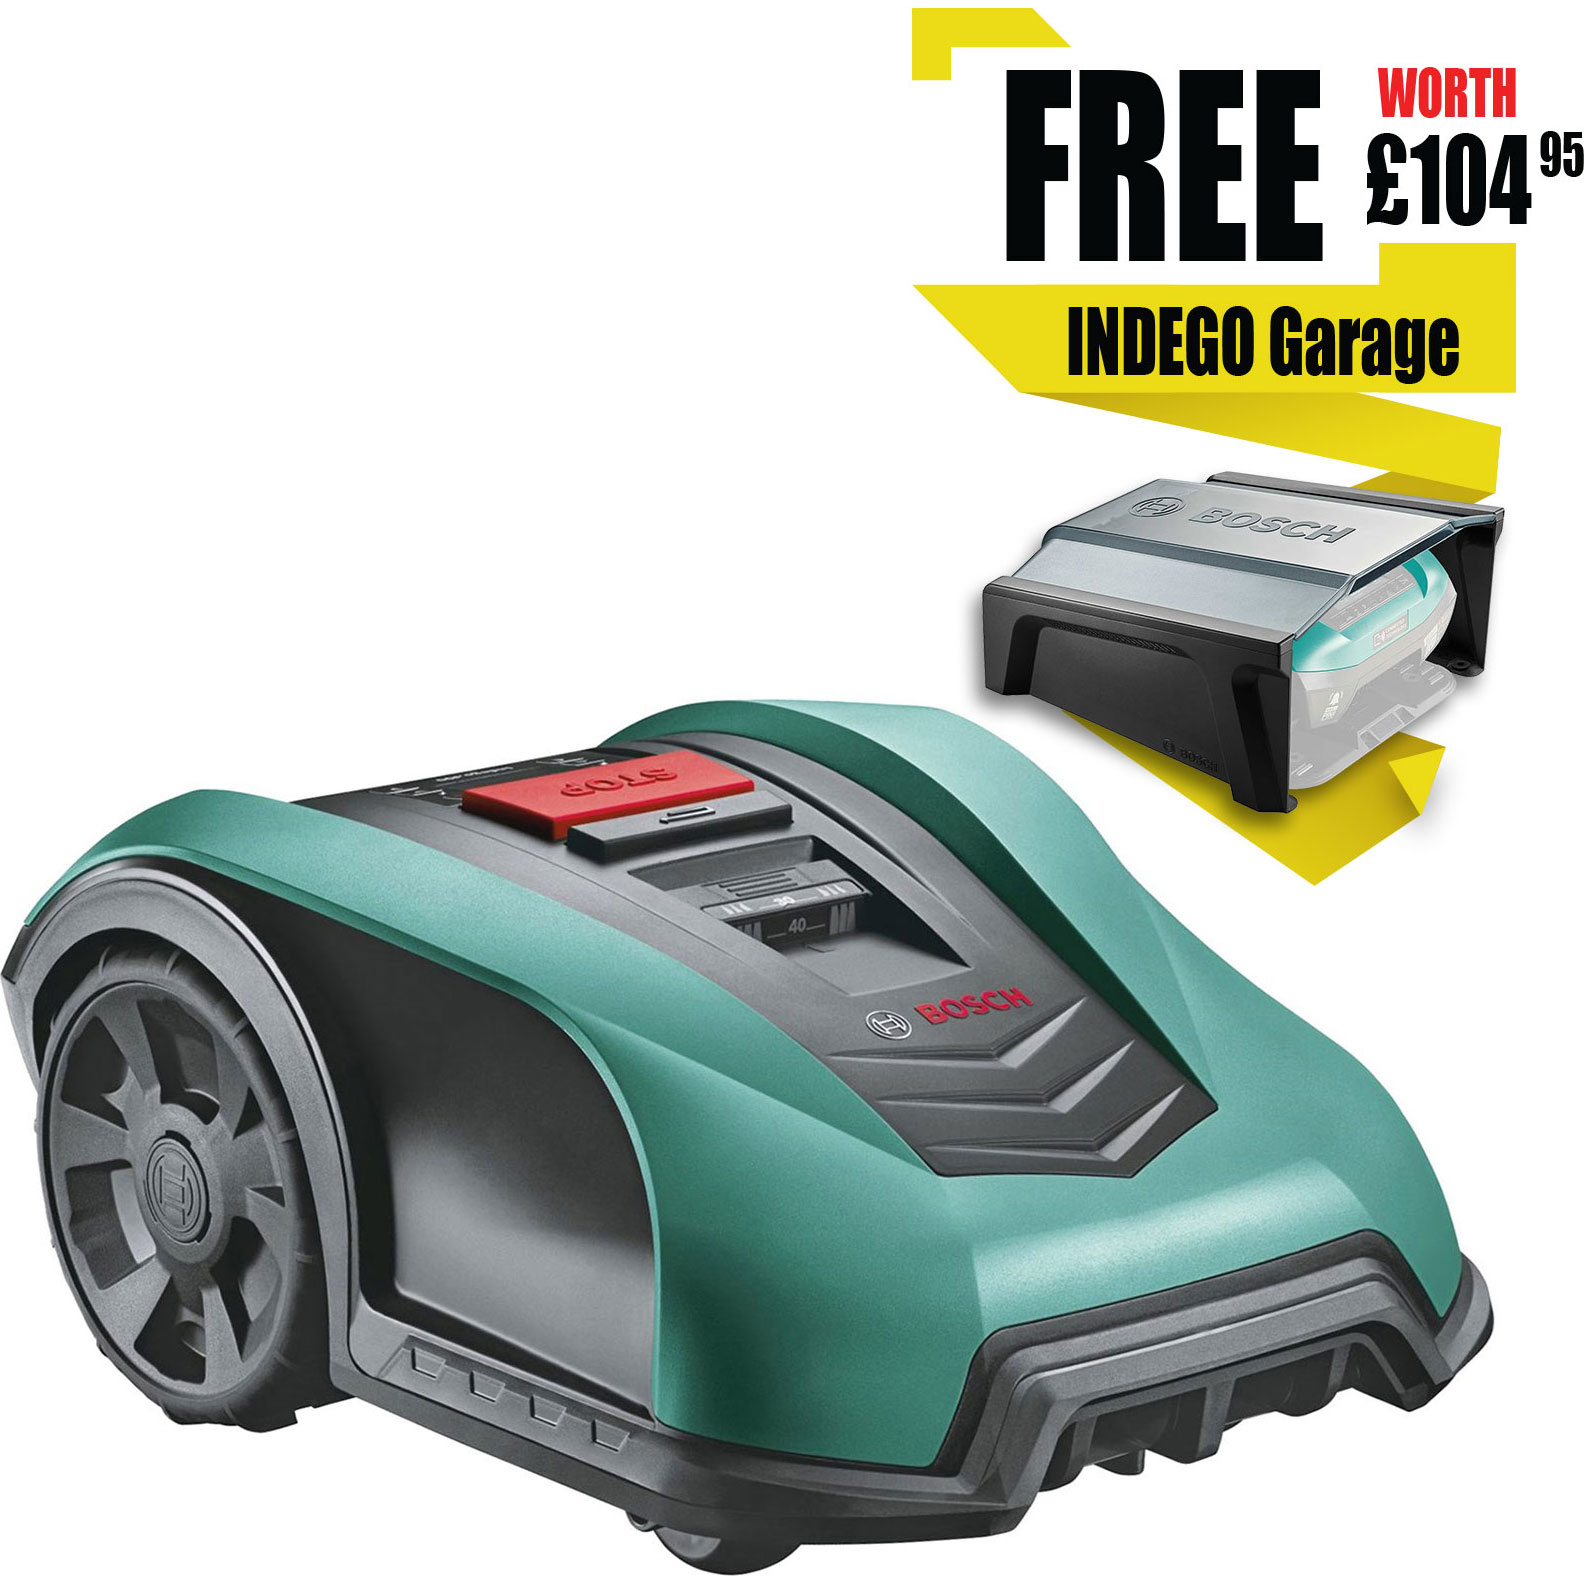 Image of Bosch Indego 350 18v Cordless Robotic Lawnmower 190mm 1 x 2.5ah Integrated Li-ion Charger